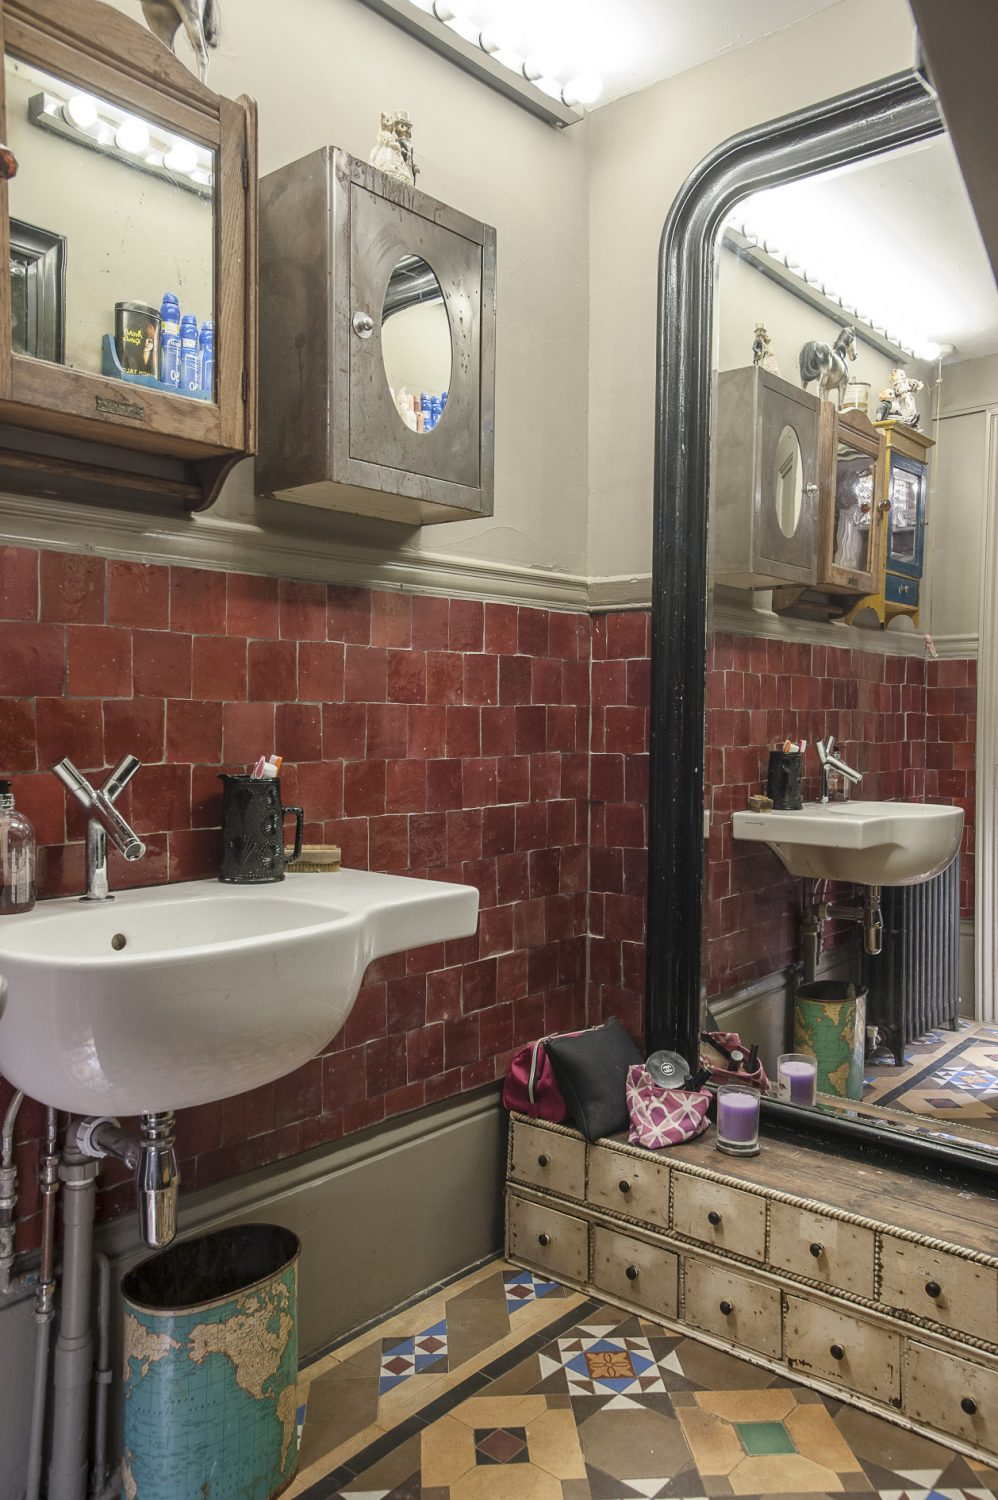 The couple fashioned the bathroom from a former utility room